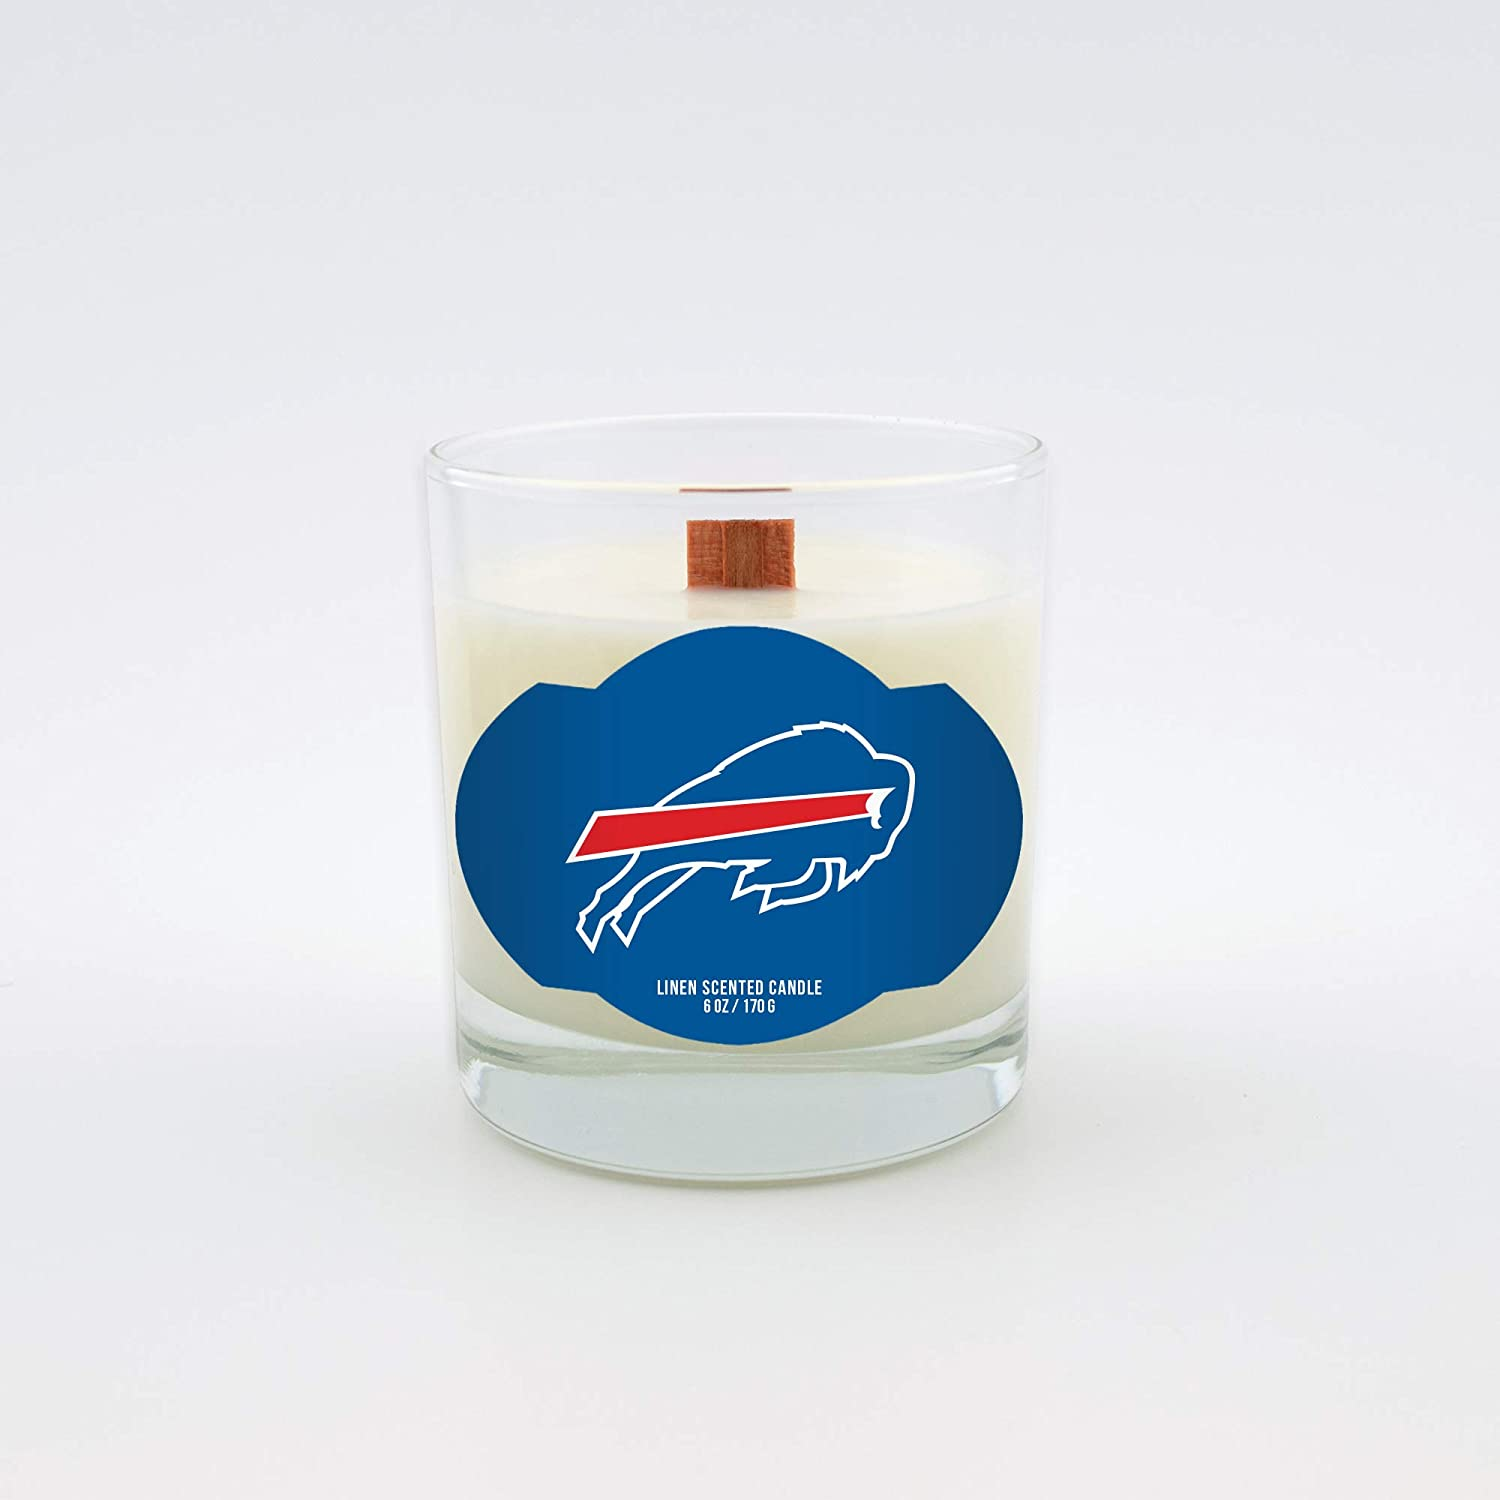 Worthy Promotional NFL Buffalo Bills Linen Scented 6 oz Soy Wax Candle Wood Wick